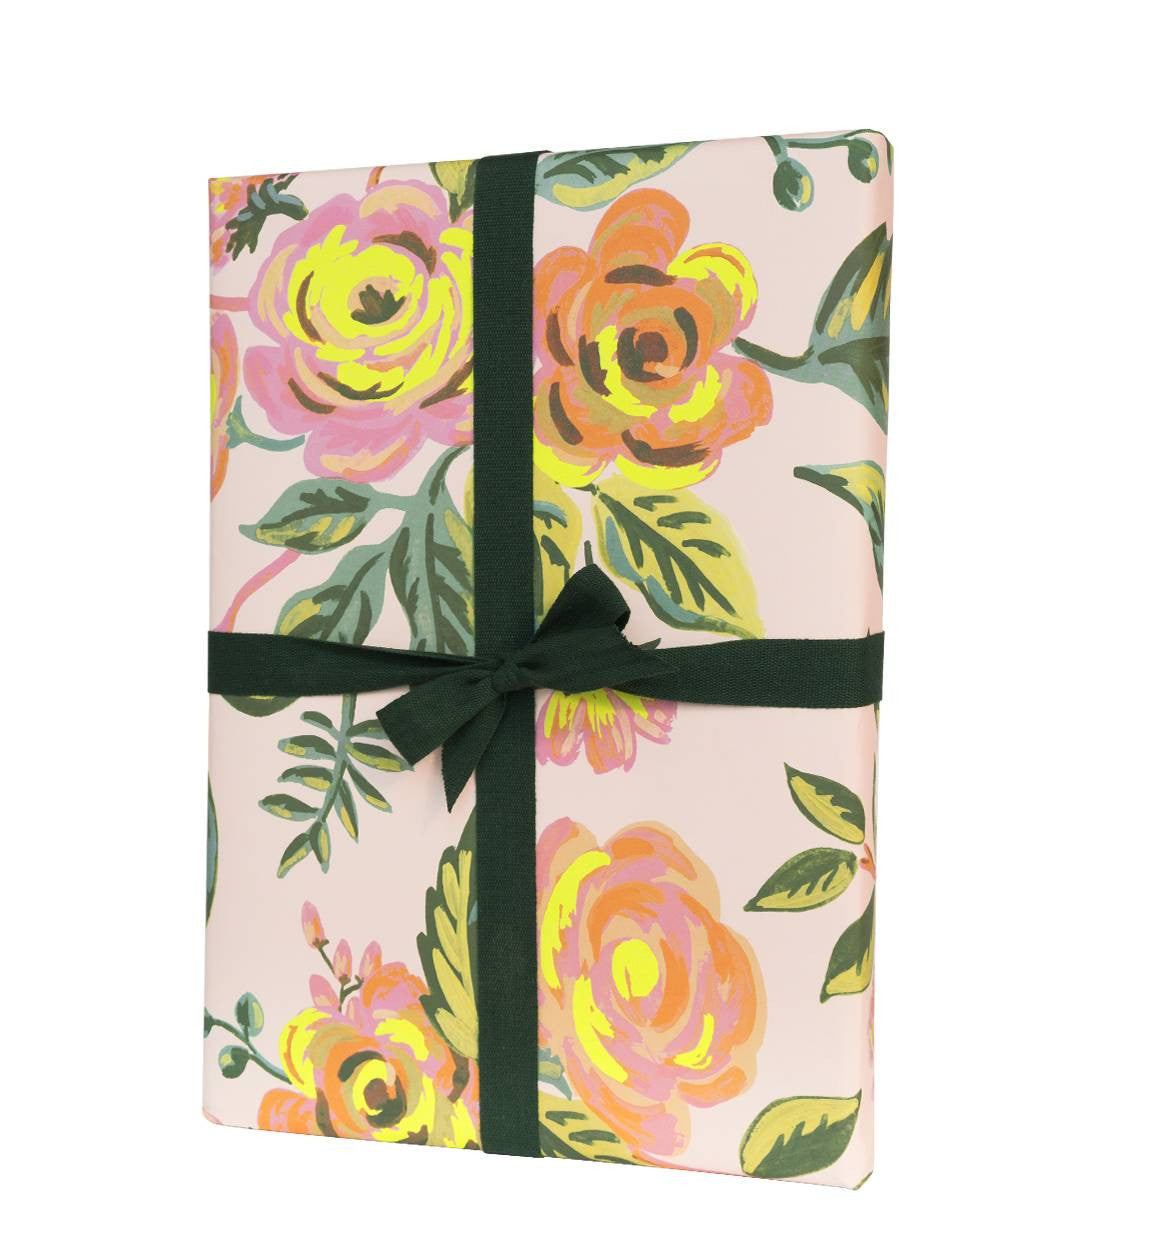 Jardin de Paris Wrapping Sheets